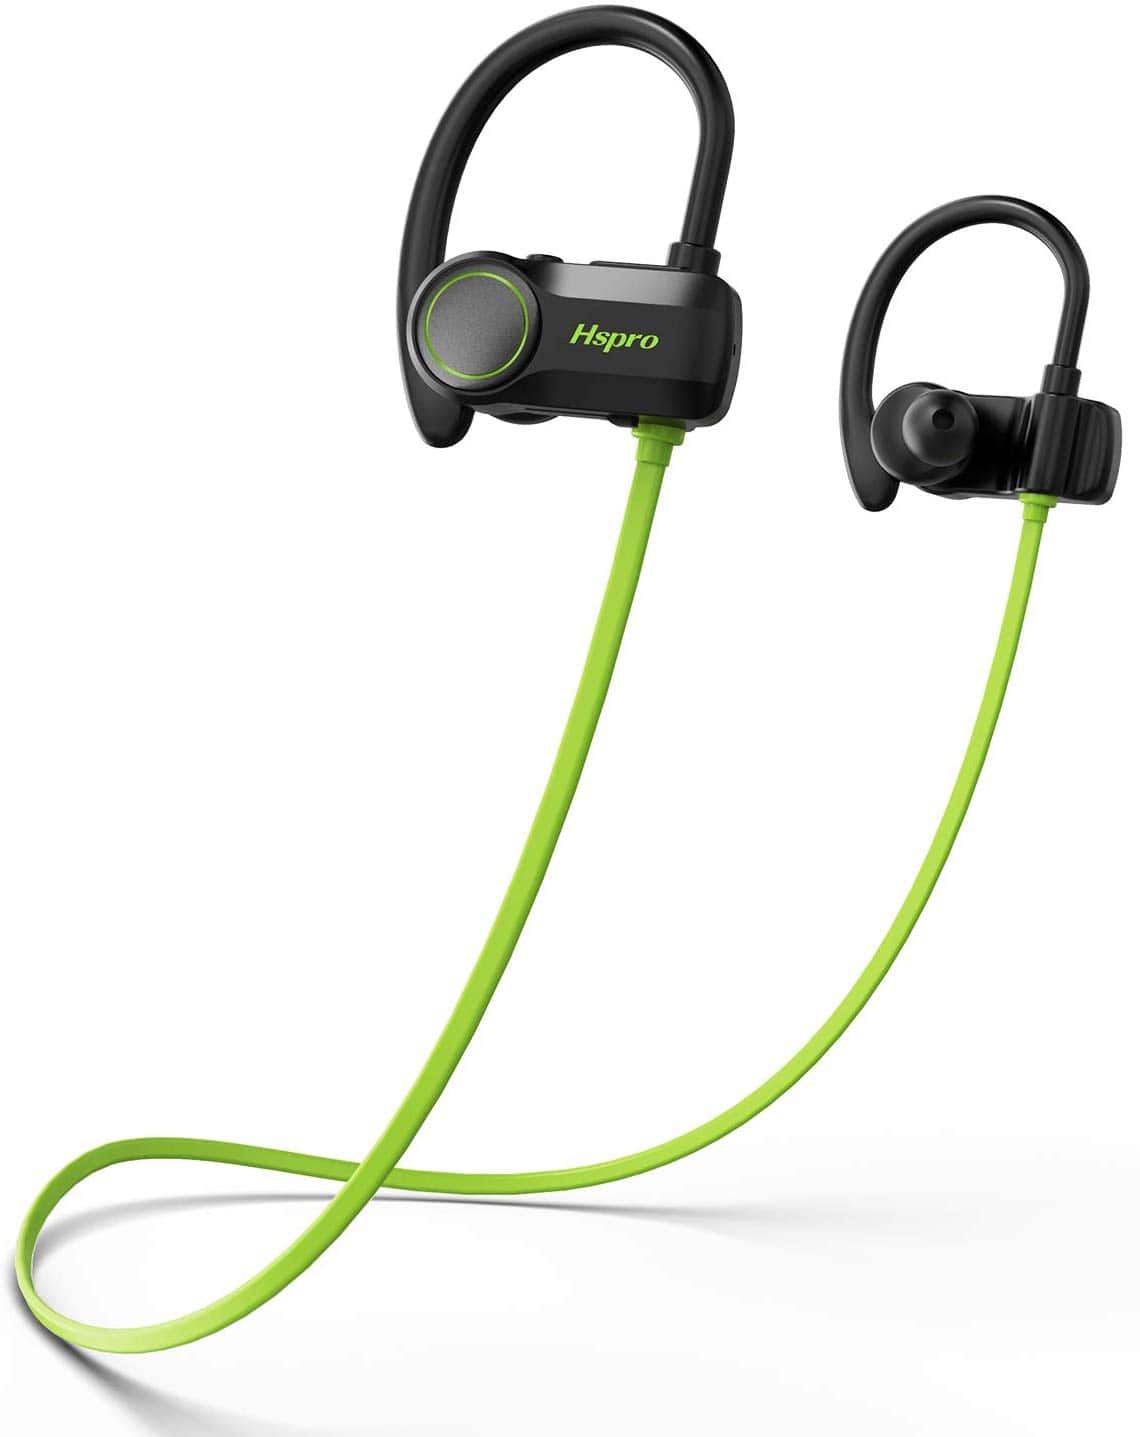 Bluetooth Headphones IPX7 CVC6.0 Noise Cancelling Mic for Gym Workout, 10 Hours Playtime $10.44